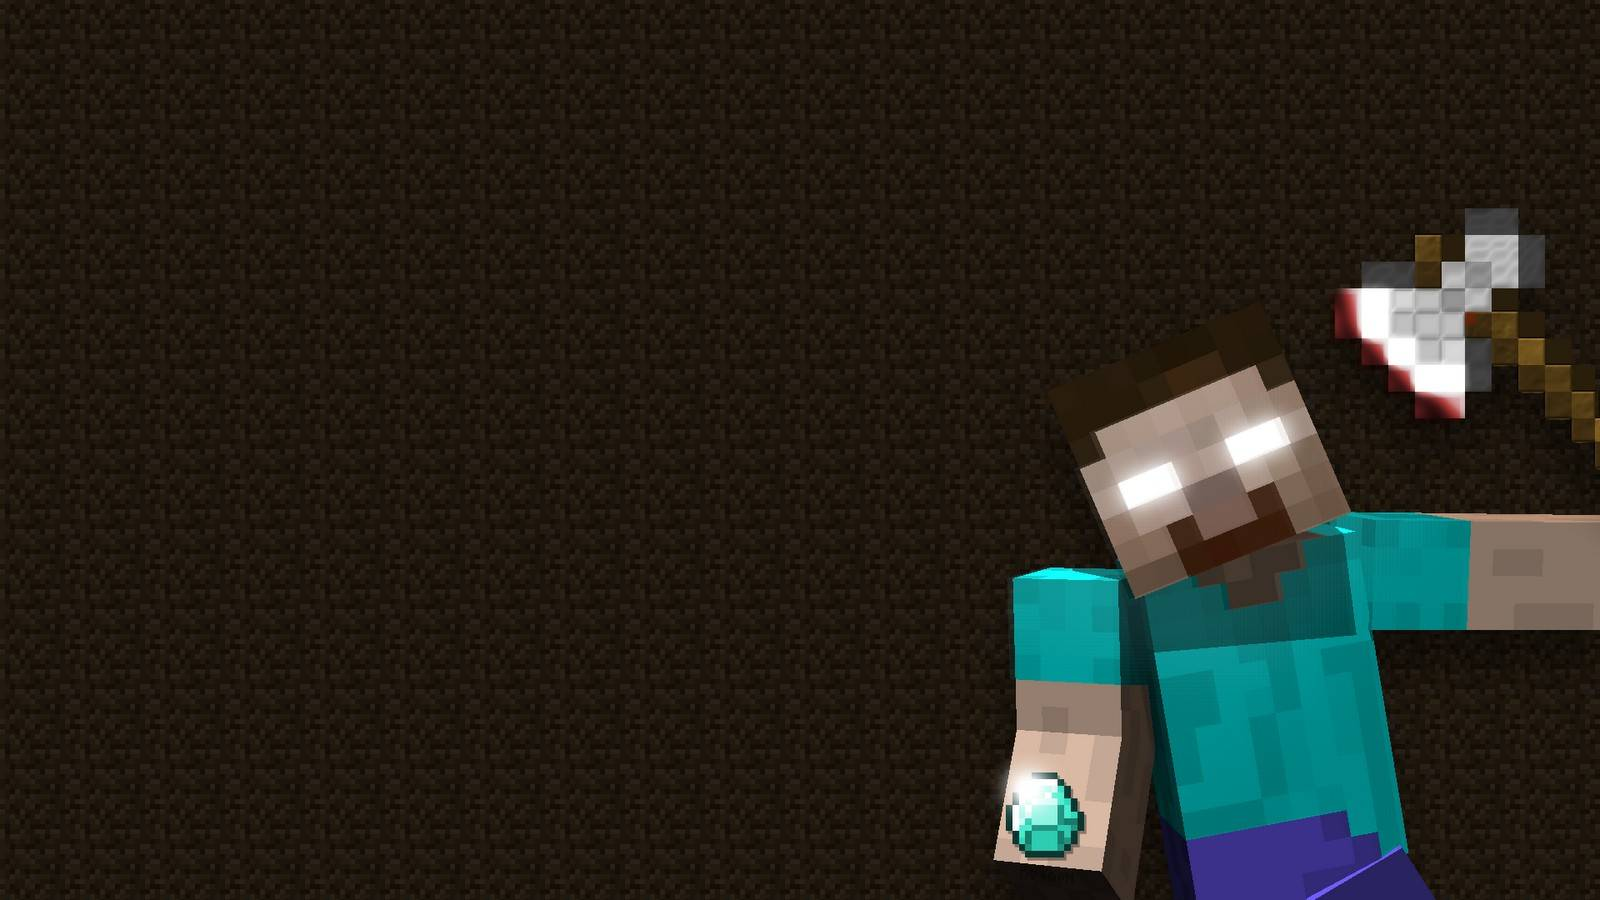 Minecraft Wallpaper Hd Herobrine Funny Herobrine HD   Minecraft 1600x900